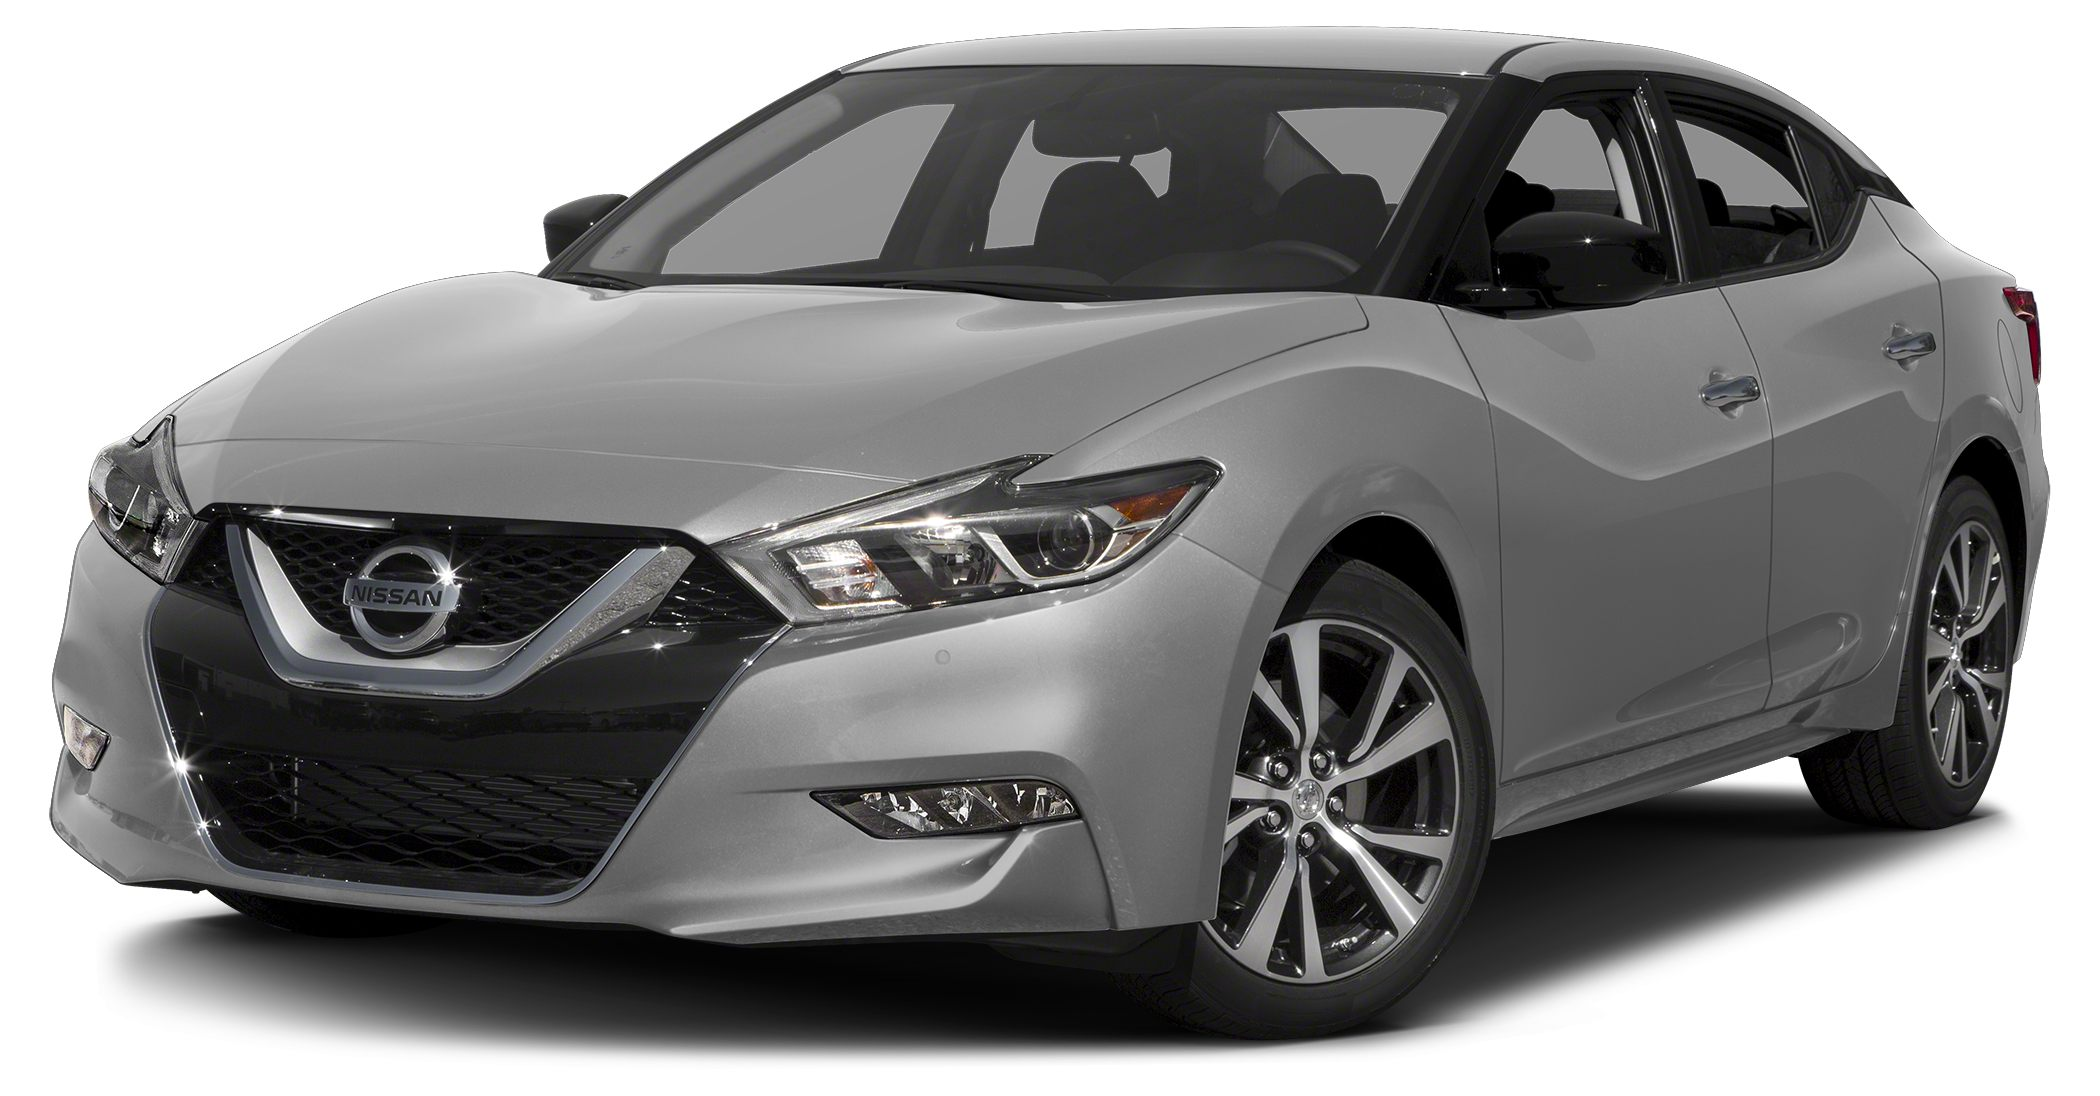 2017 Nissan Maxima 35 S Miles 9Color Brilliant Silver Stock 7170356 VIN 1N4AA6AP9HC412451